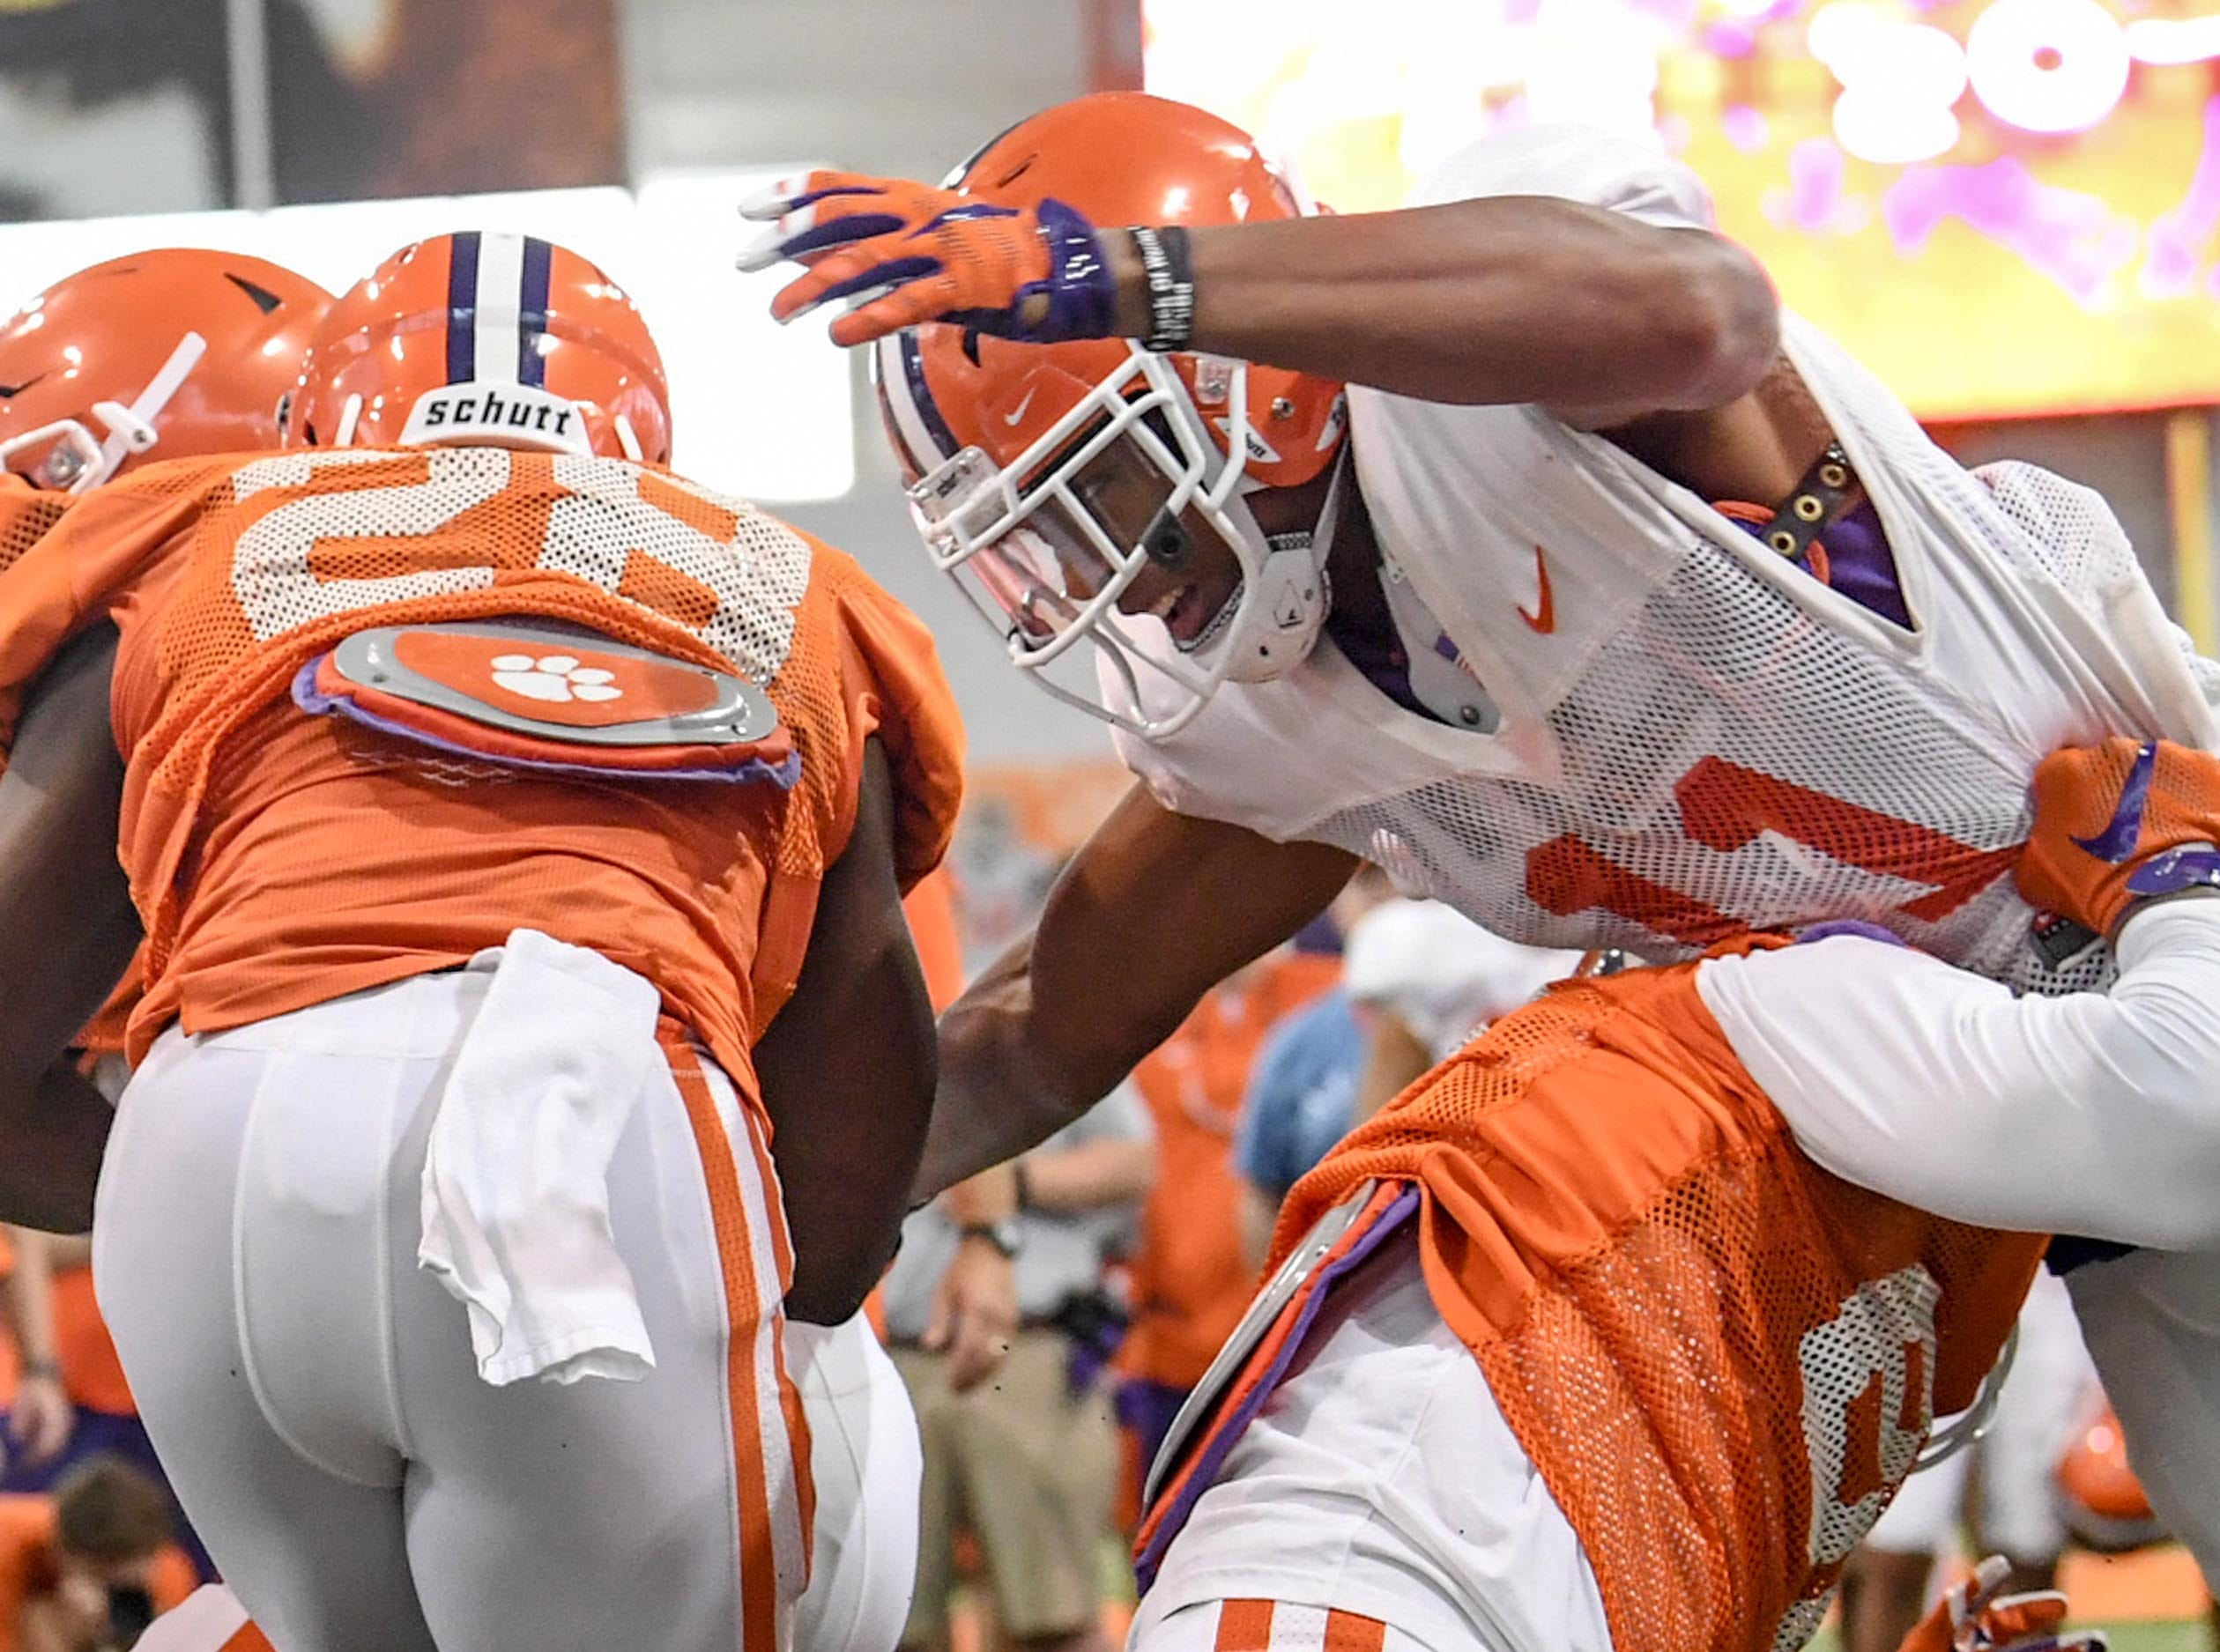 Clemson safety Isaiah Simmons (11), right, reaches out to tackle running back Tavien Feaster (28) during fall practice in Clemson on Wednesday.